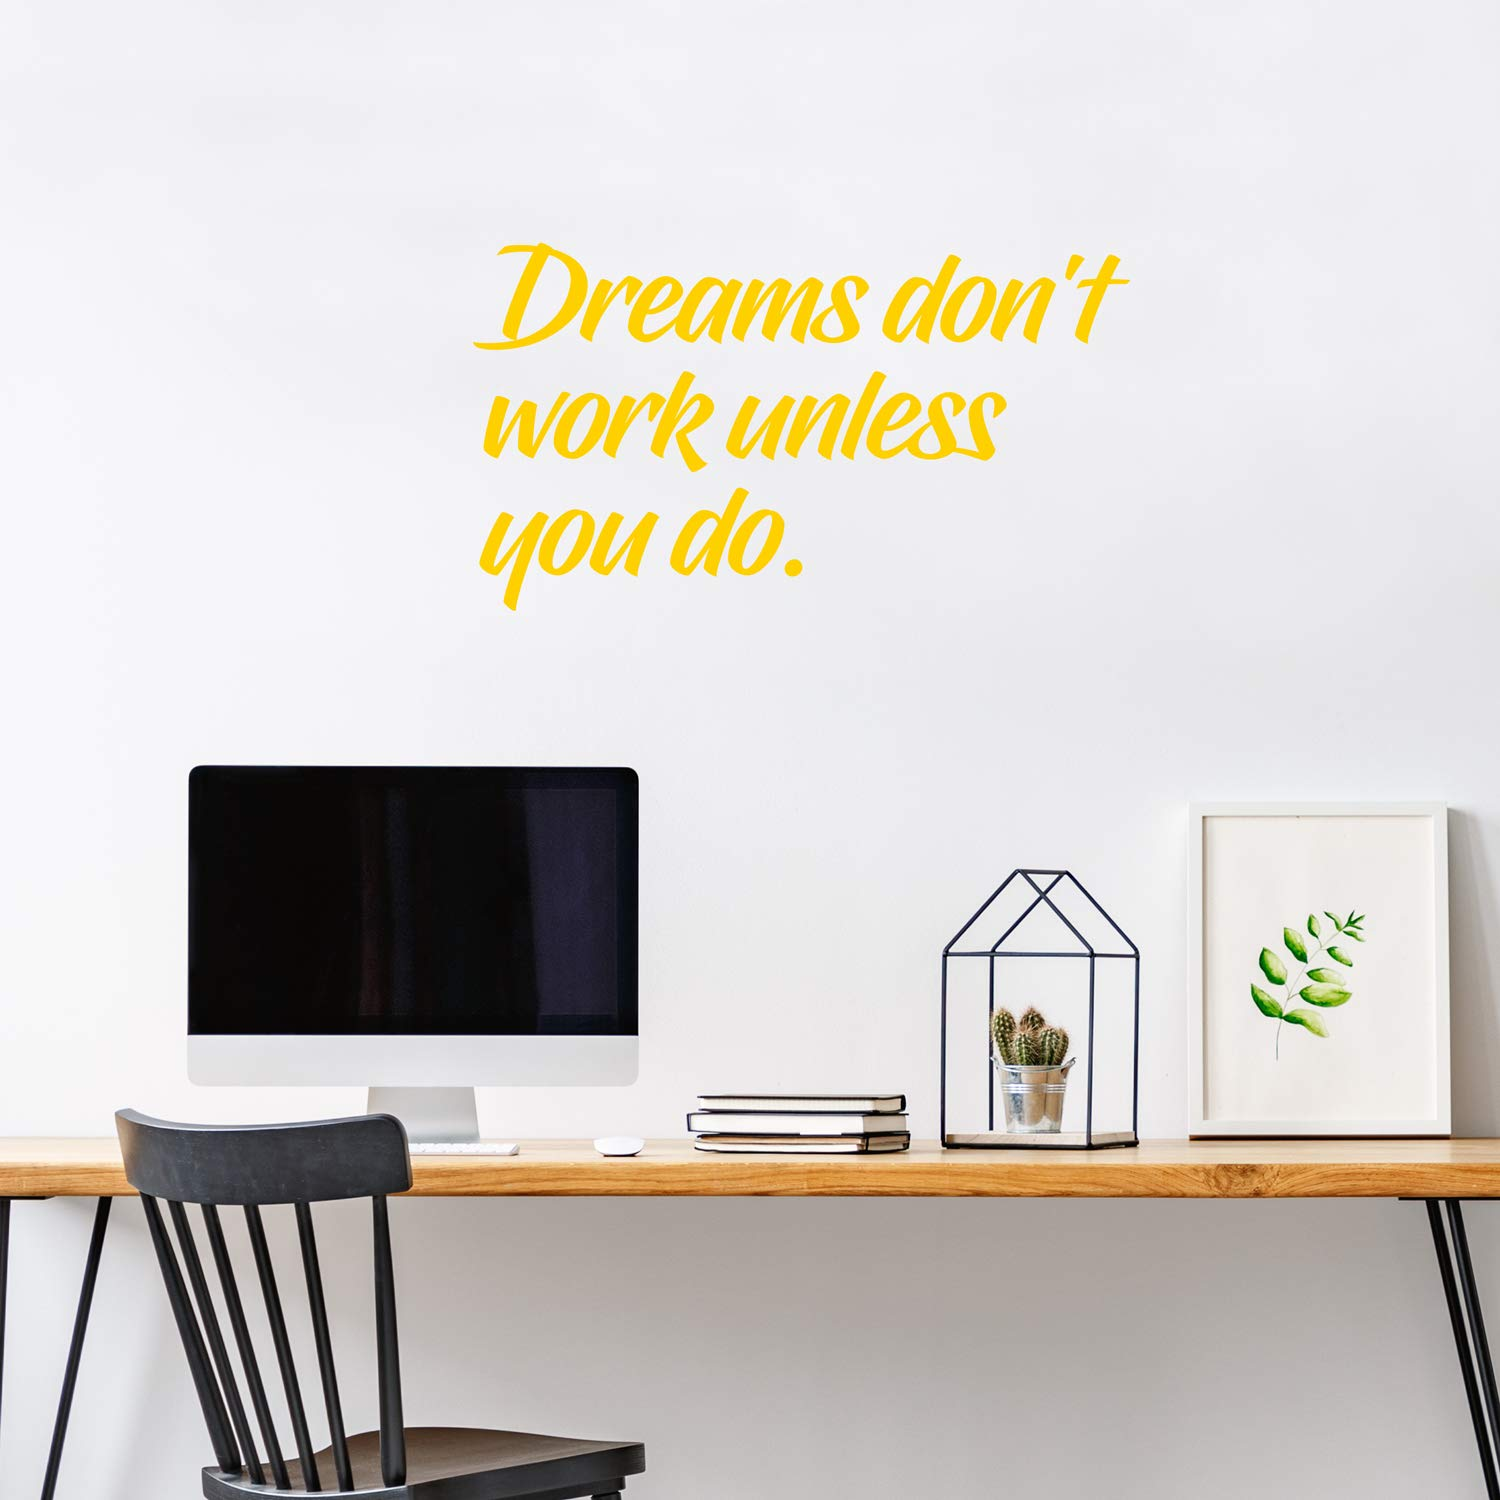 Vinyl Wall Art Decal 15 x 27, Yellow Dreams Dont Work Unless You Do Pulse Vinyl 15 x 27 Motivational Quotes for Home Bedroom Work Office Gym Fitness Apartment Living Room Workplace Sticker Decor